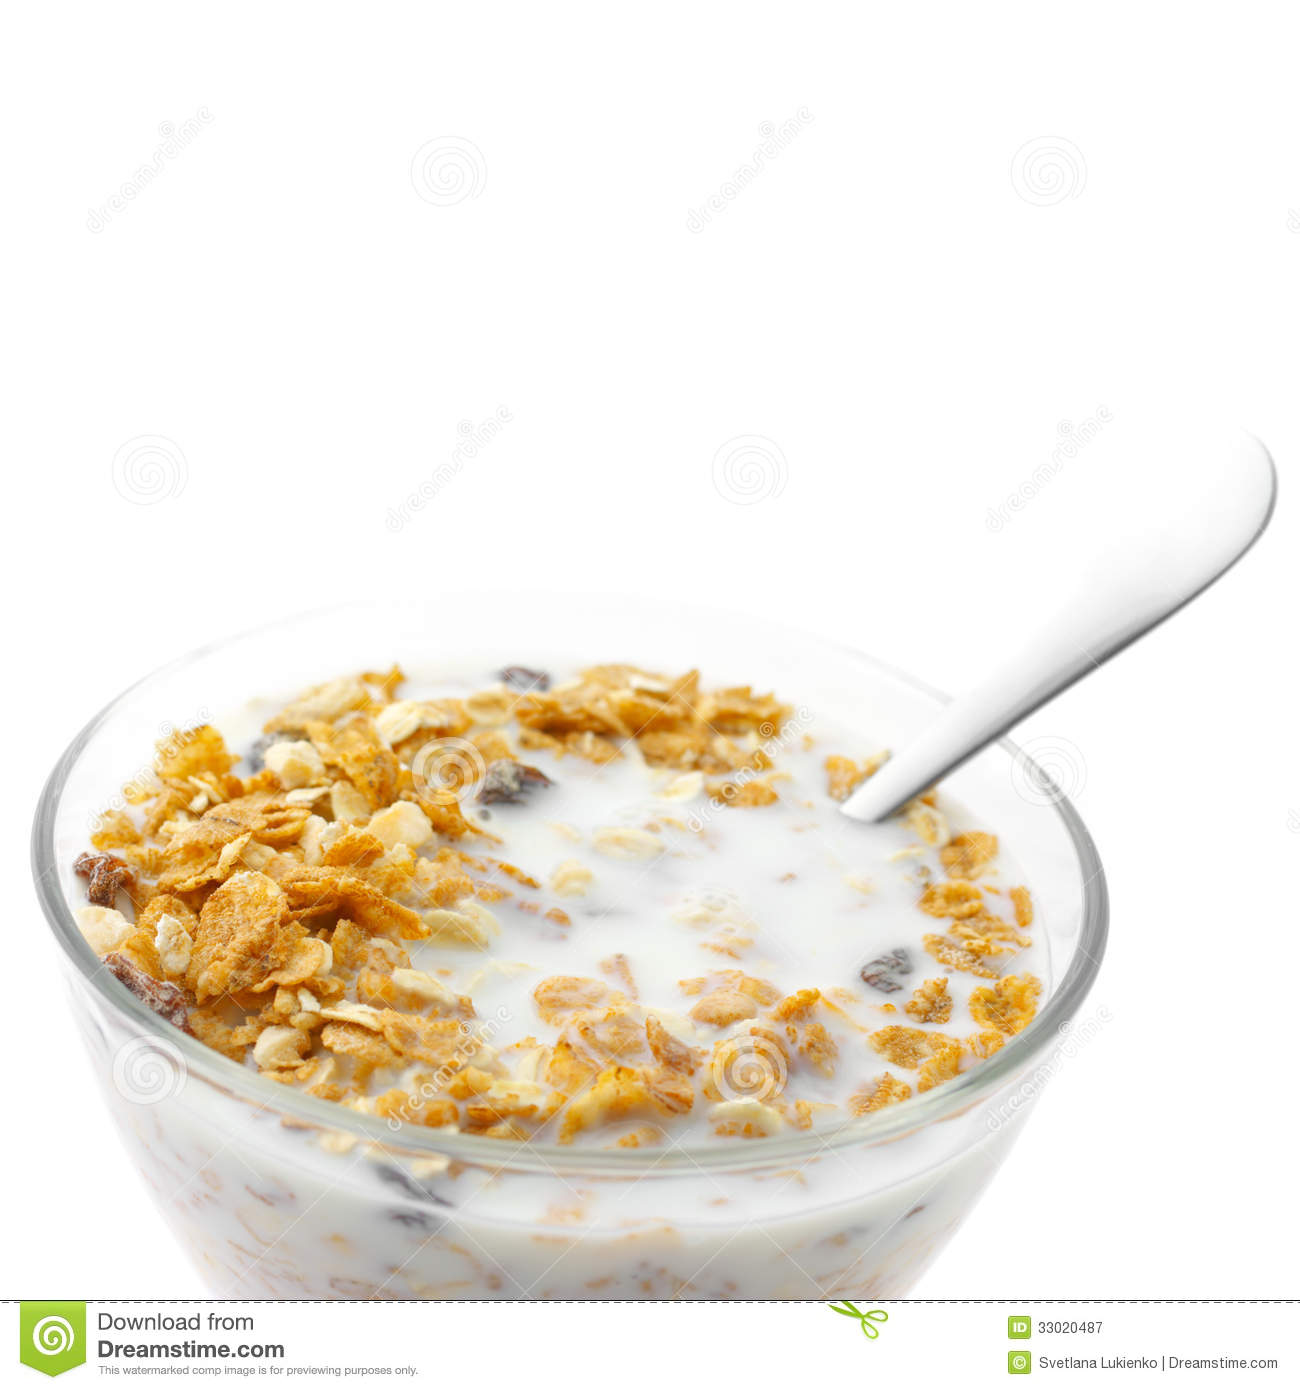 Breakfast Cereal Royalty Free Stock Photography - Image: 33020487